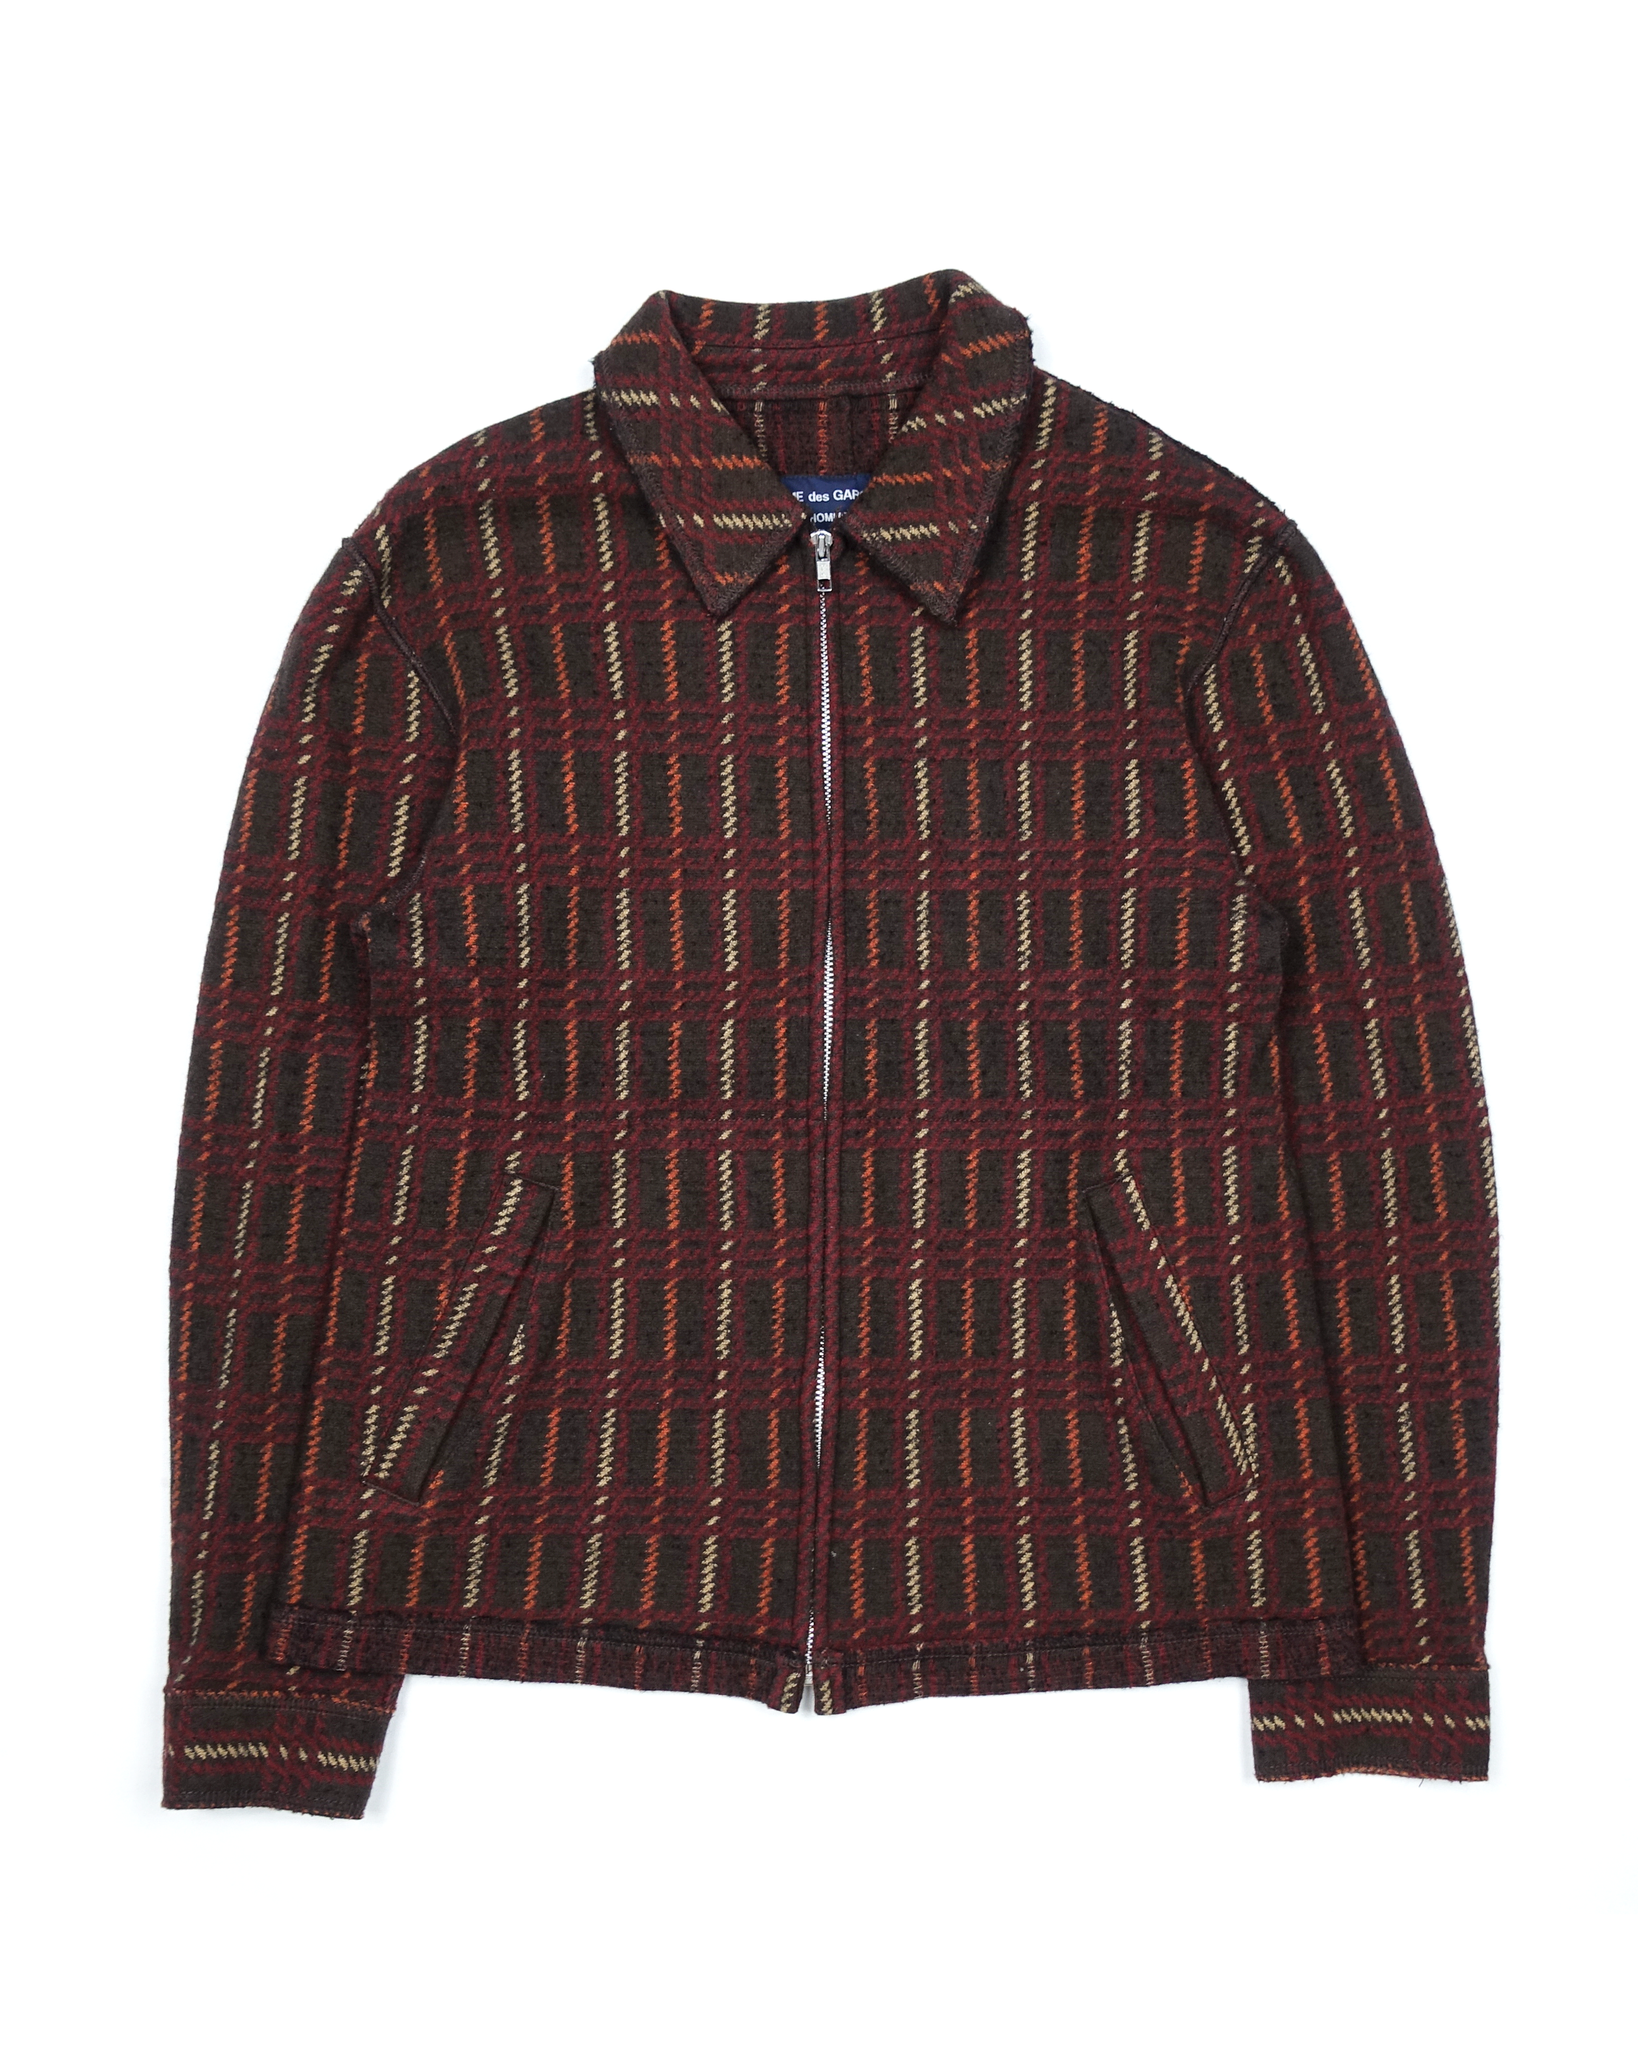 Comme des Garçons Homme Triple Weave Wool Work Jacket AW2004